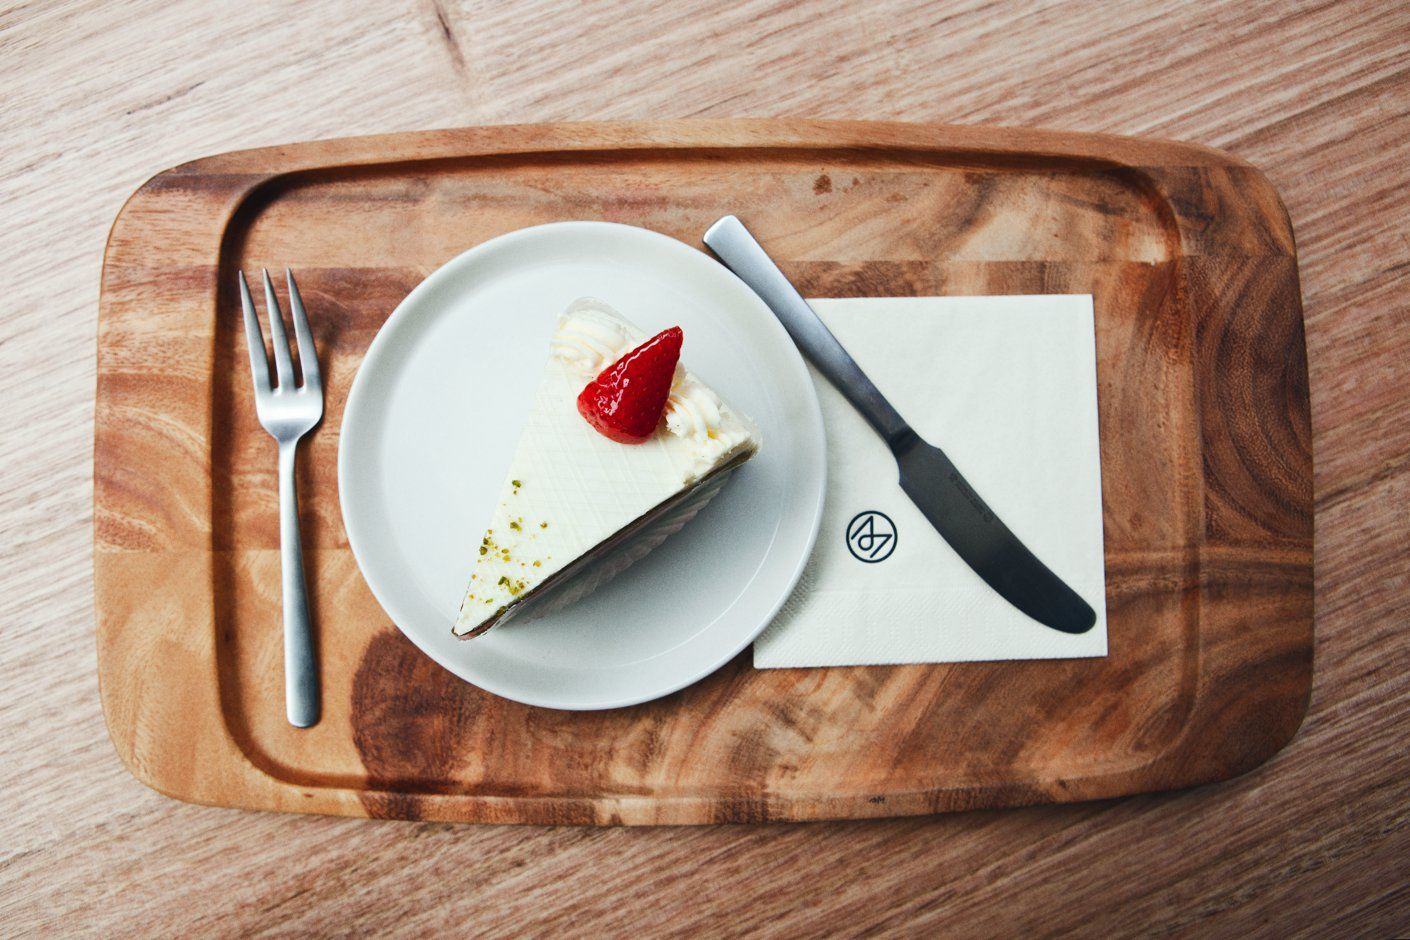 Moncole Café in London serve their food with the Kay Bojesen Grand Prix cutlery. Cake fork and lunch knife. Kay Bojesen Grand Prix cutlery/flatware. Danish Design.